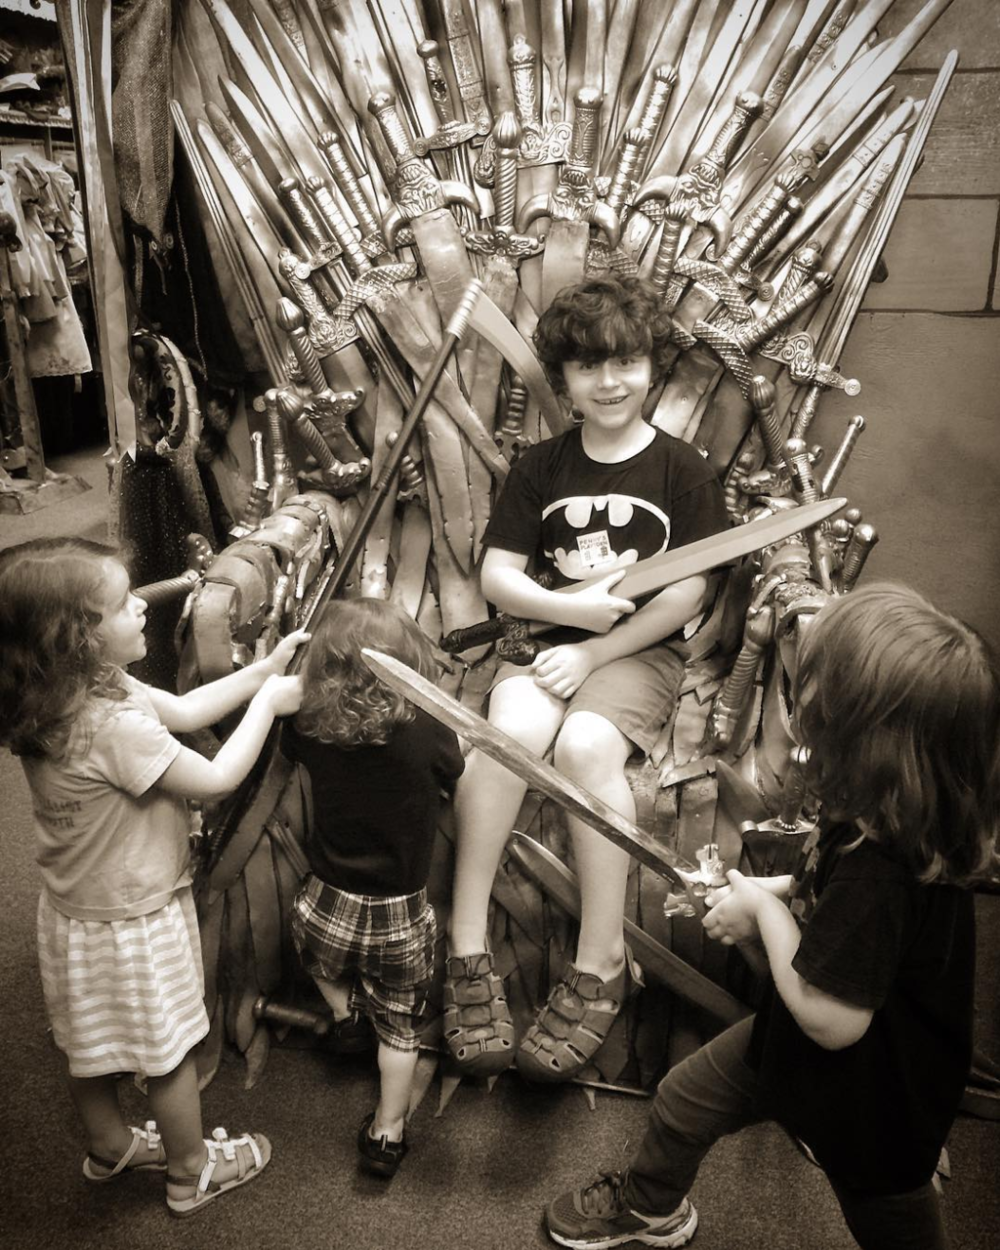 @kellyrien had her children dethrone Cersei at Rose Costumes (Denton's version of King's Landing).